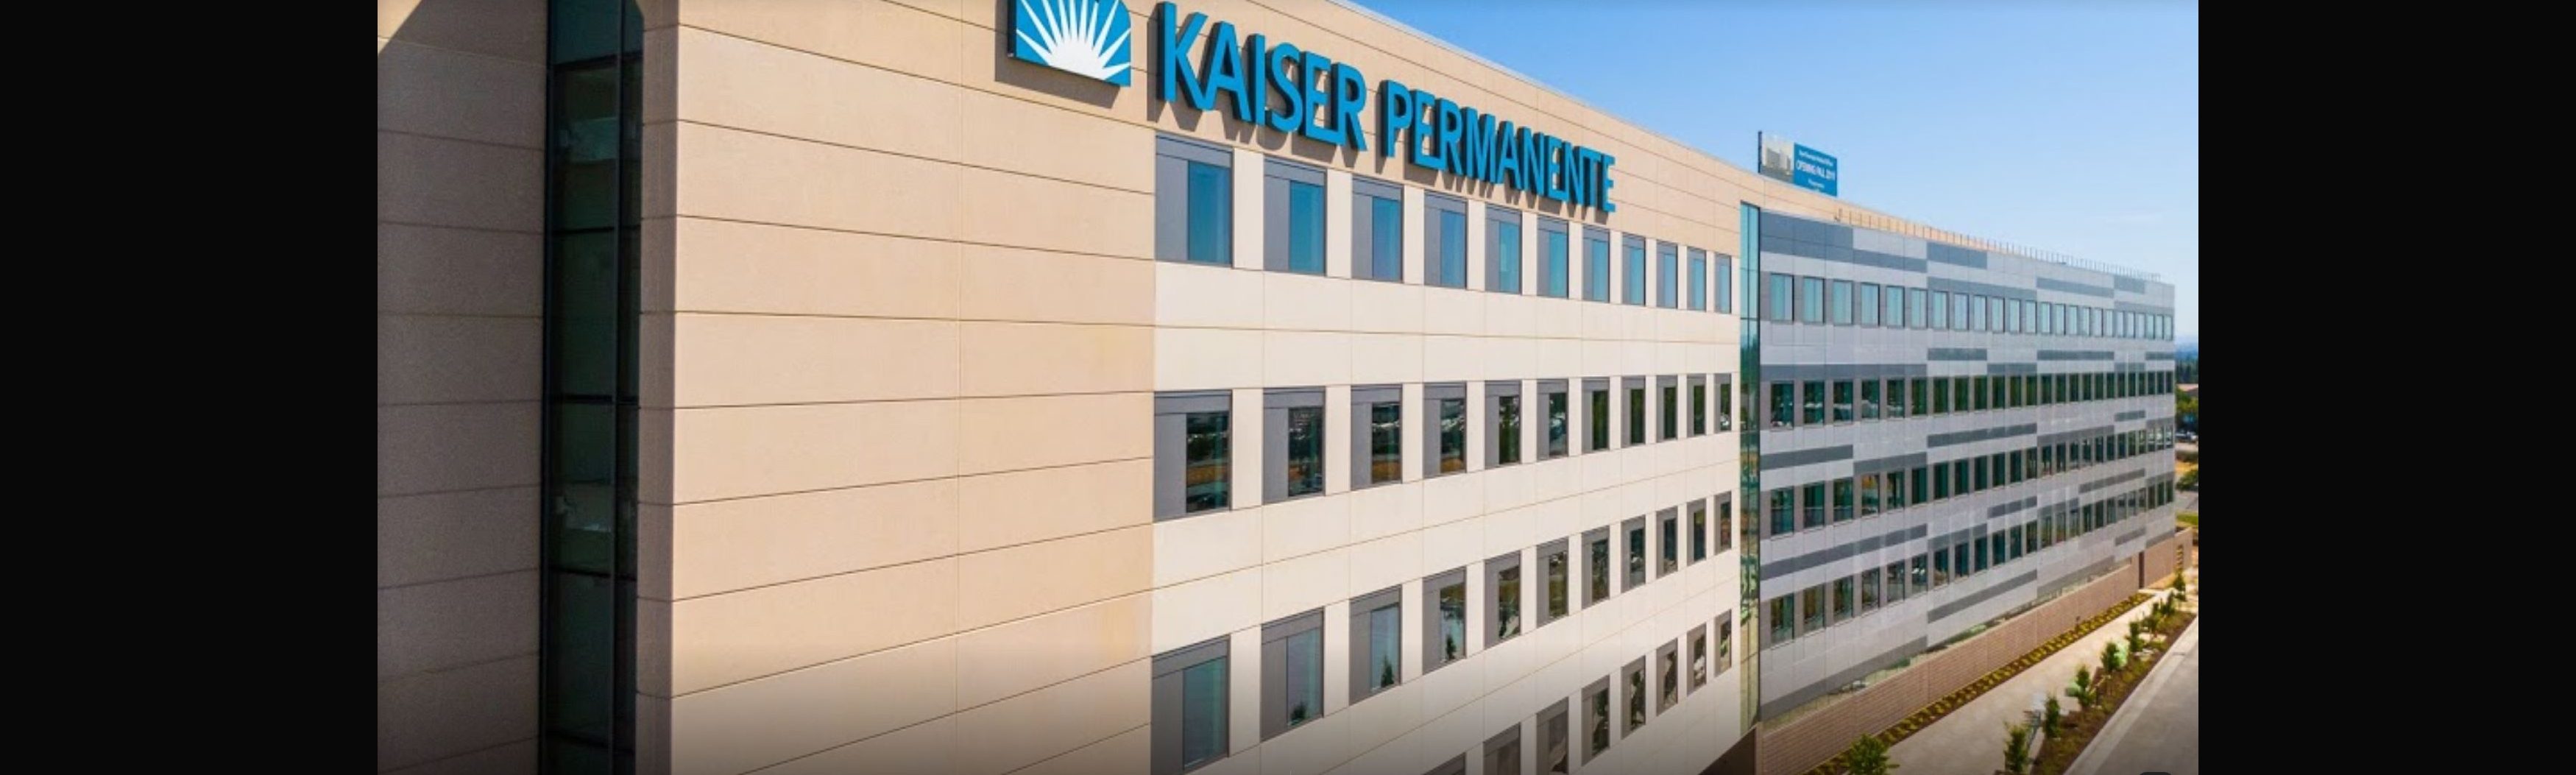 Kaiser Permanente chooses Optik™ in their Roseville medical facility